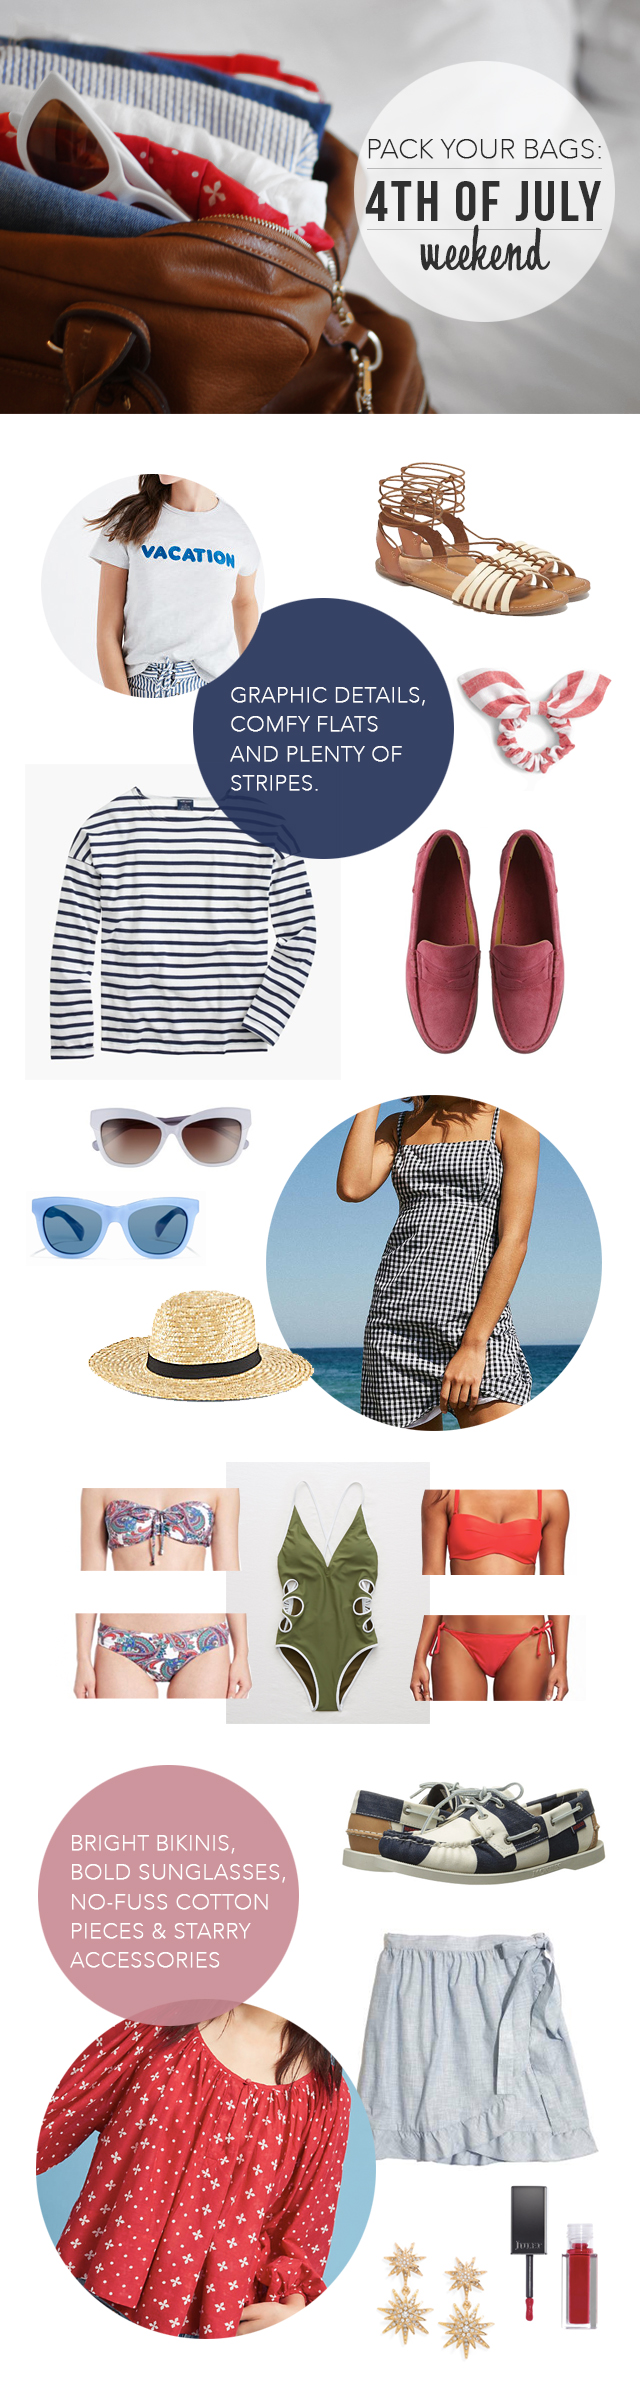 The Steele Maiden: What to Pack 4th of July Weekend Getaway